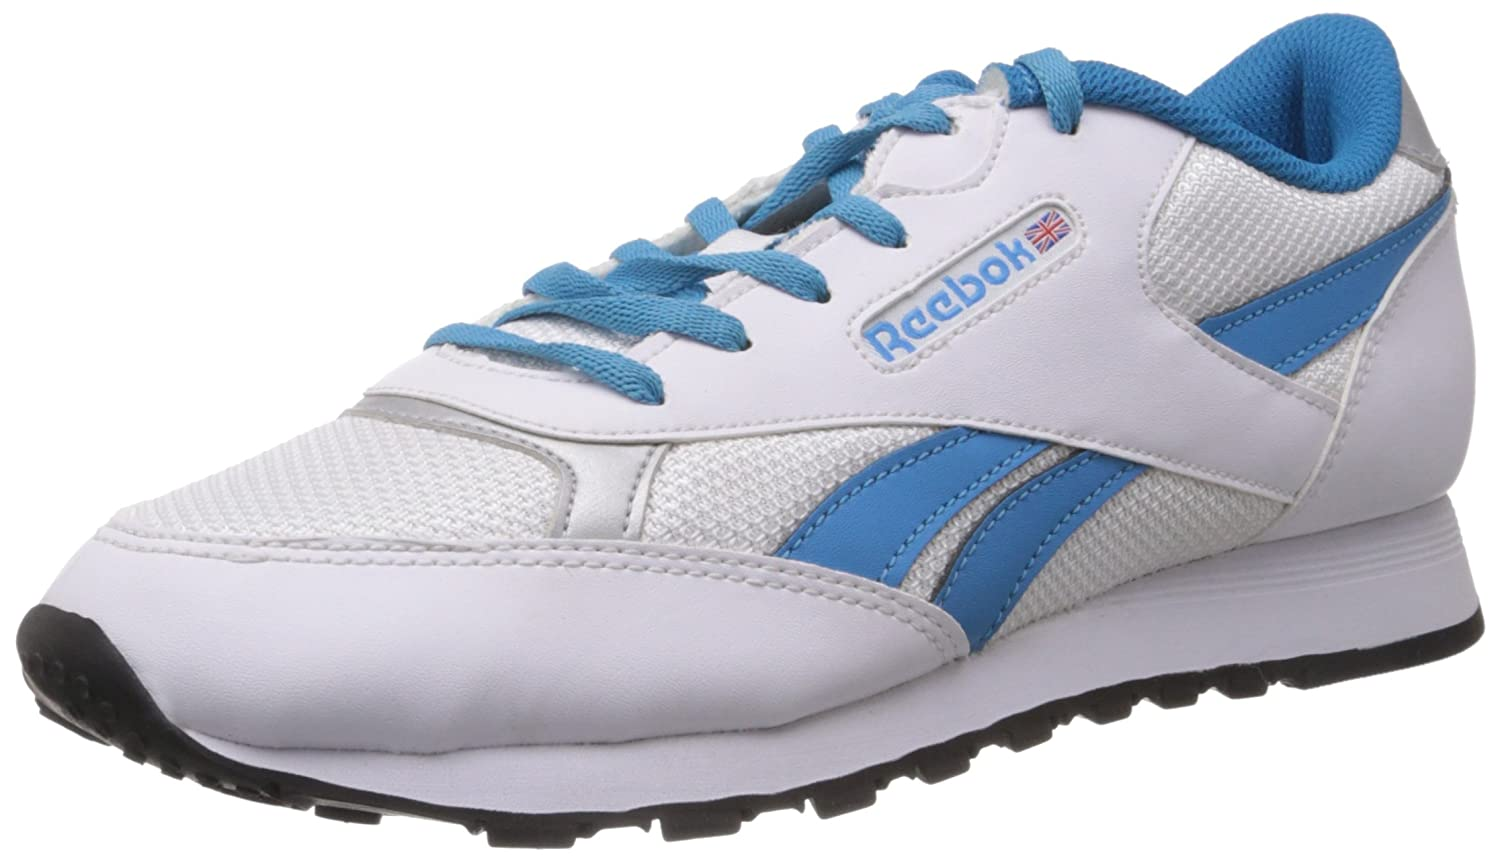 80b728e0b Cheap reebok sports shoes price list Buy Online  OFF32% Discounted